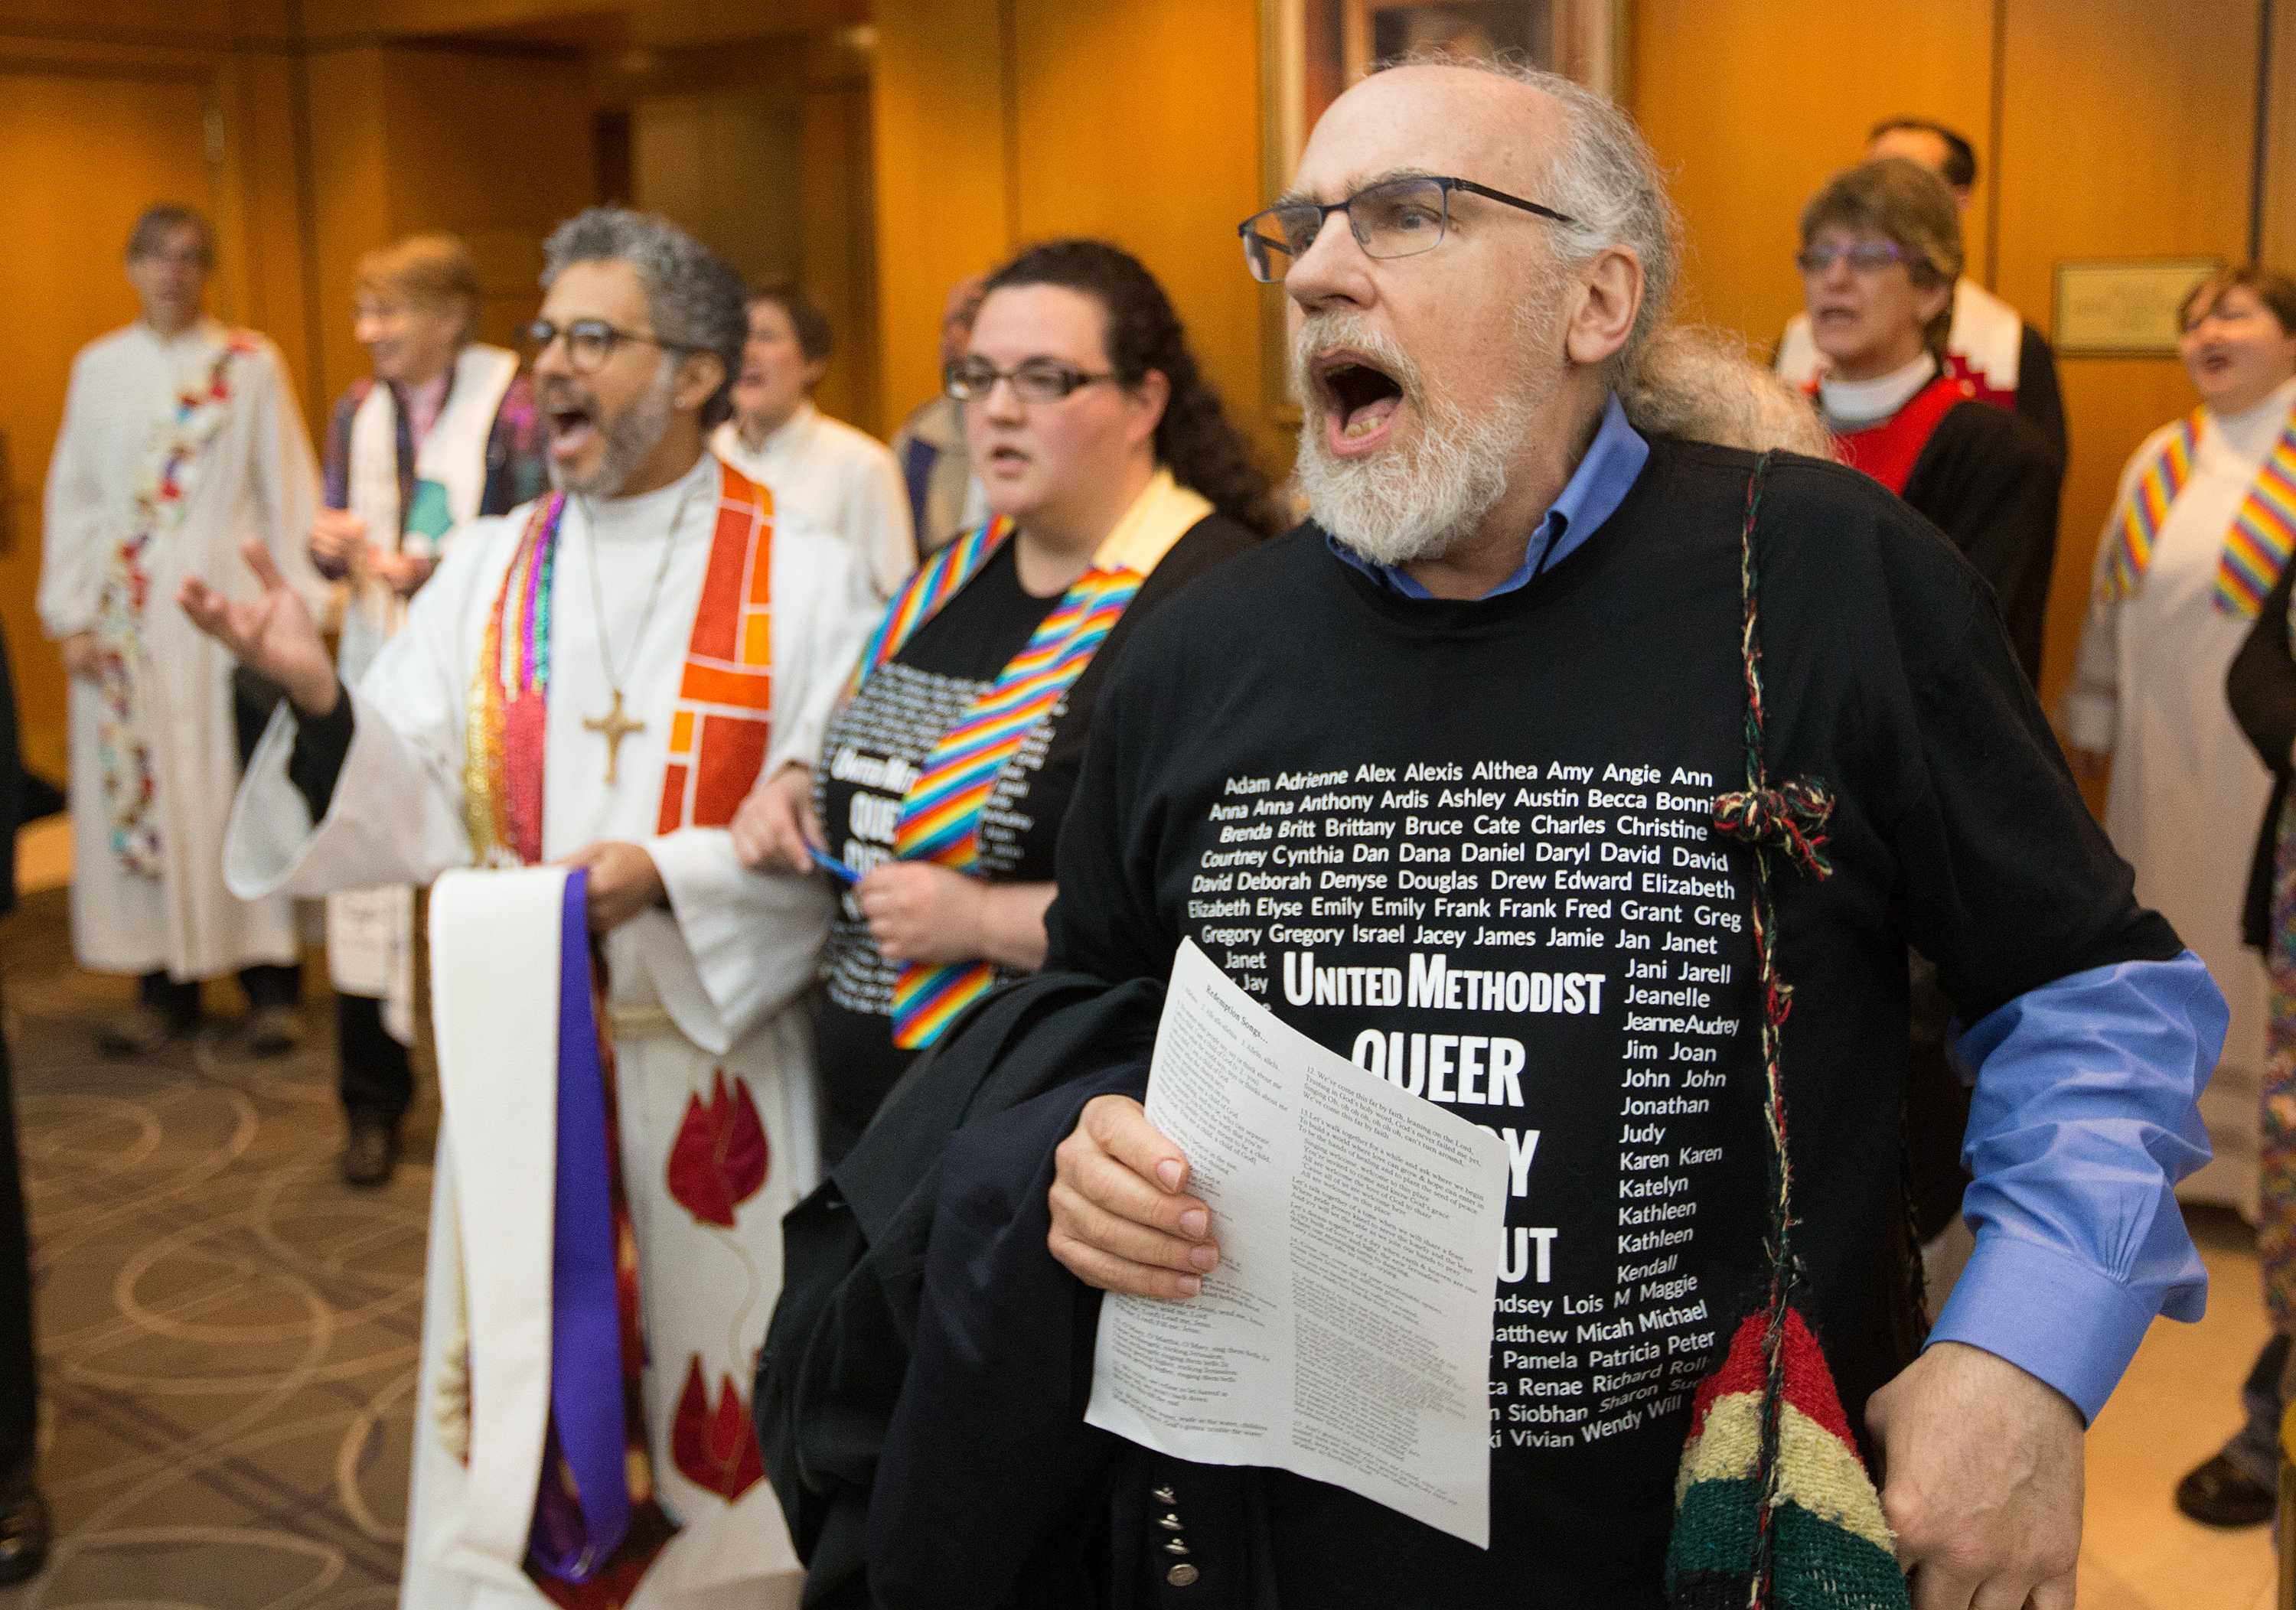 The Rev. K Karpen (right) of St. Paul and St. Andrew United Methodist Church in New York leads a song prior to an oral hearing before the denomination's top court, meeting in Newark, N.J., questioning whether a gay pastor can serve as a bishop in The United Methodist Church. Photo by Mike DuBose, UMNS.